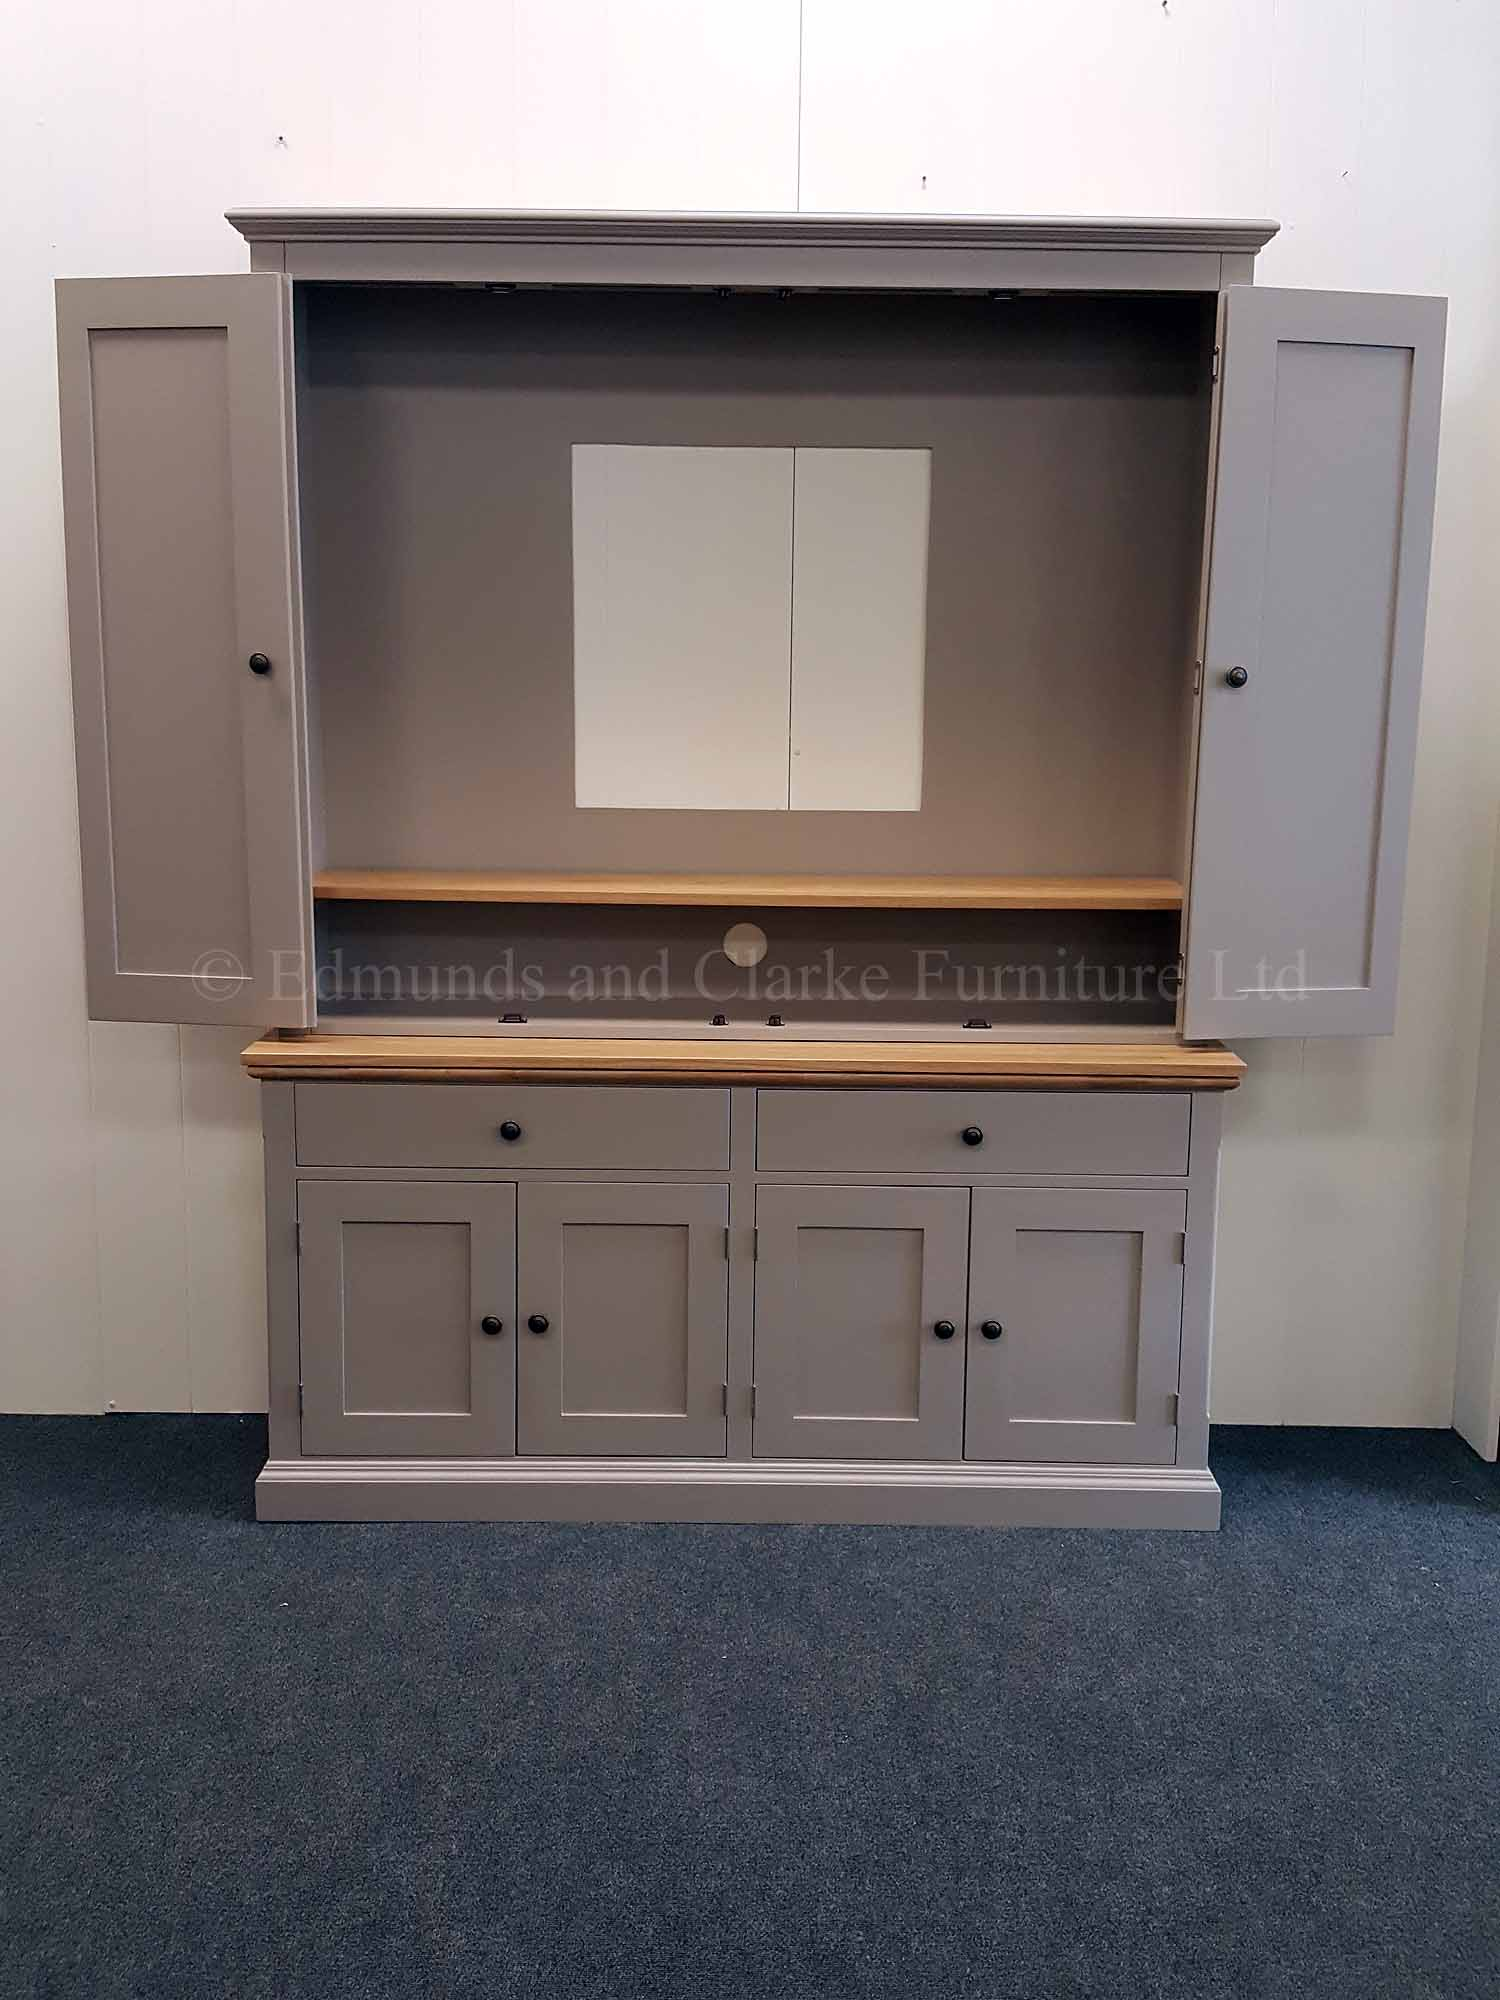 Edmunds painted TV Media Cupboard. 2 large drawers and 4 cupboards below for storage. 10 colours available and can colour match too